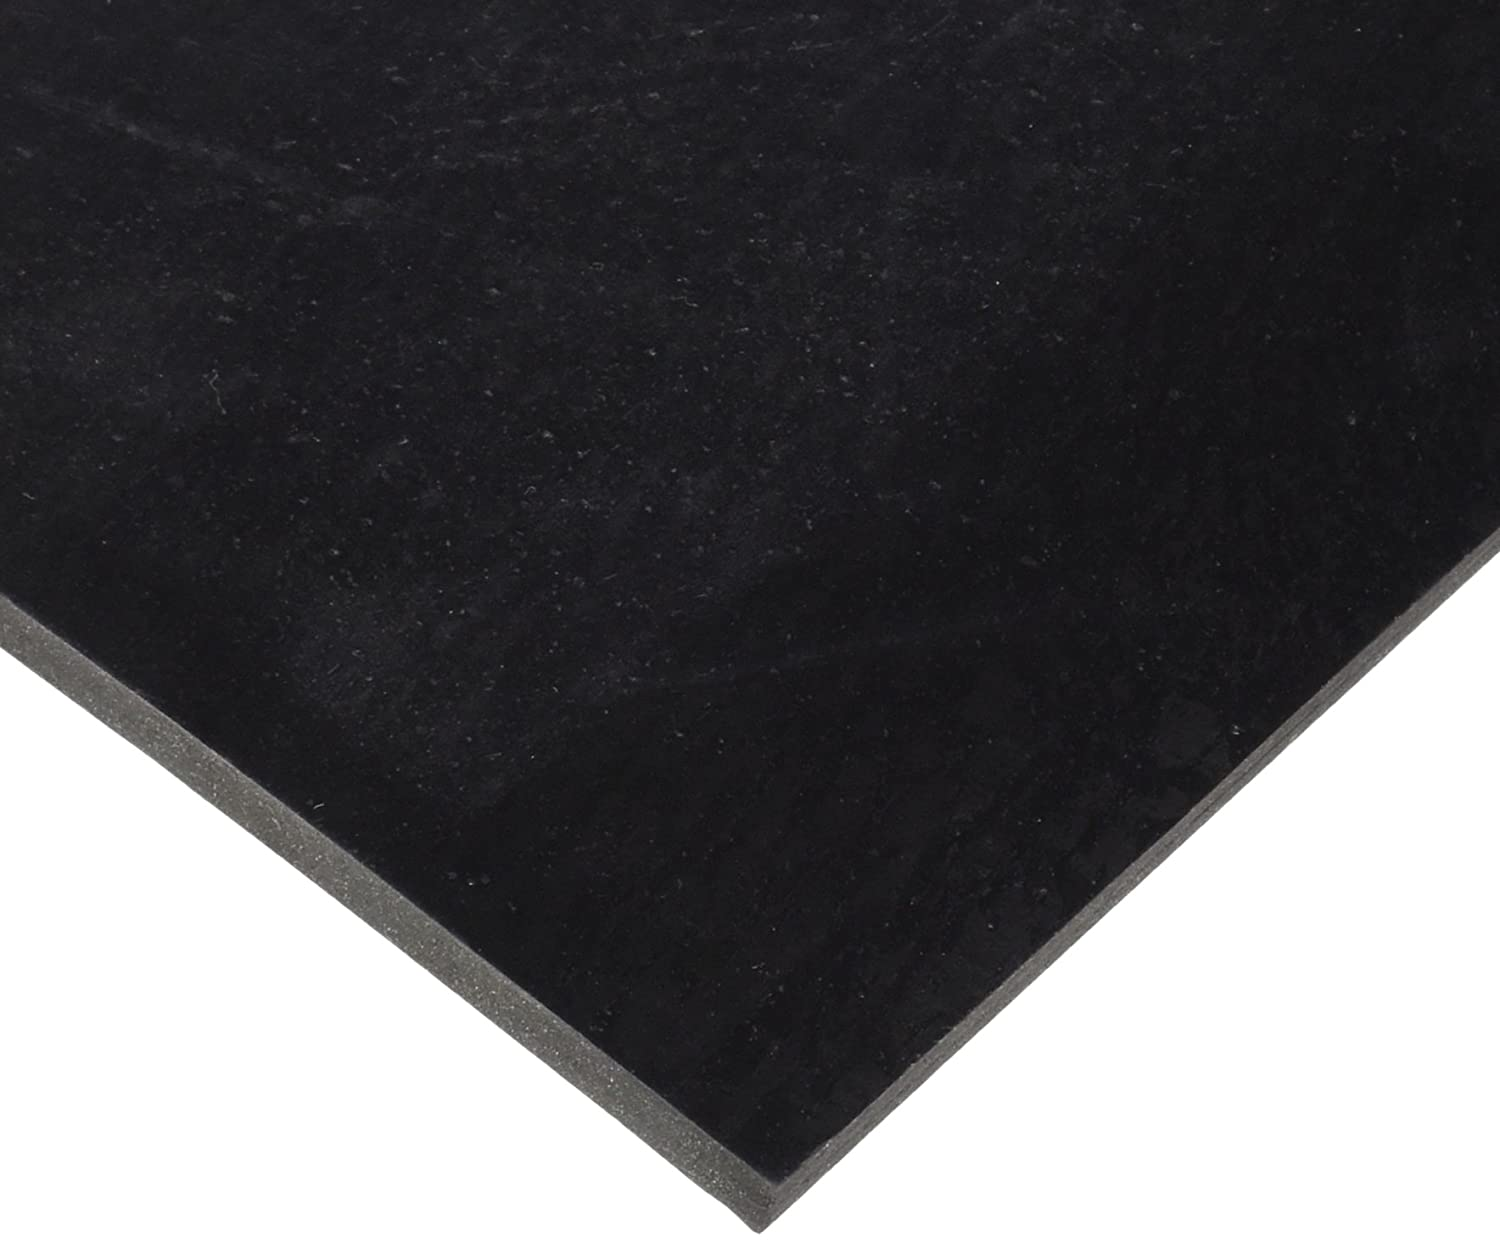 SBR Styrene Butadiene Rubber Sheet 60 Shore A Black Smooth Finish No Backing 0.25 Thickness 6 Width 6 Length